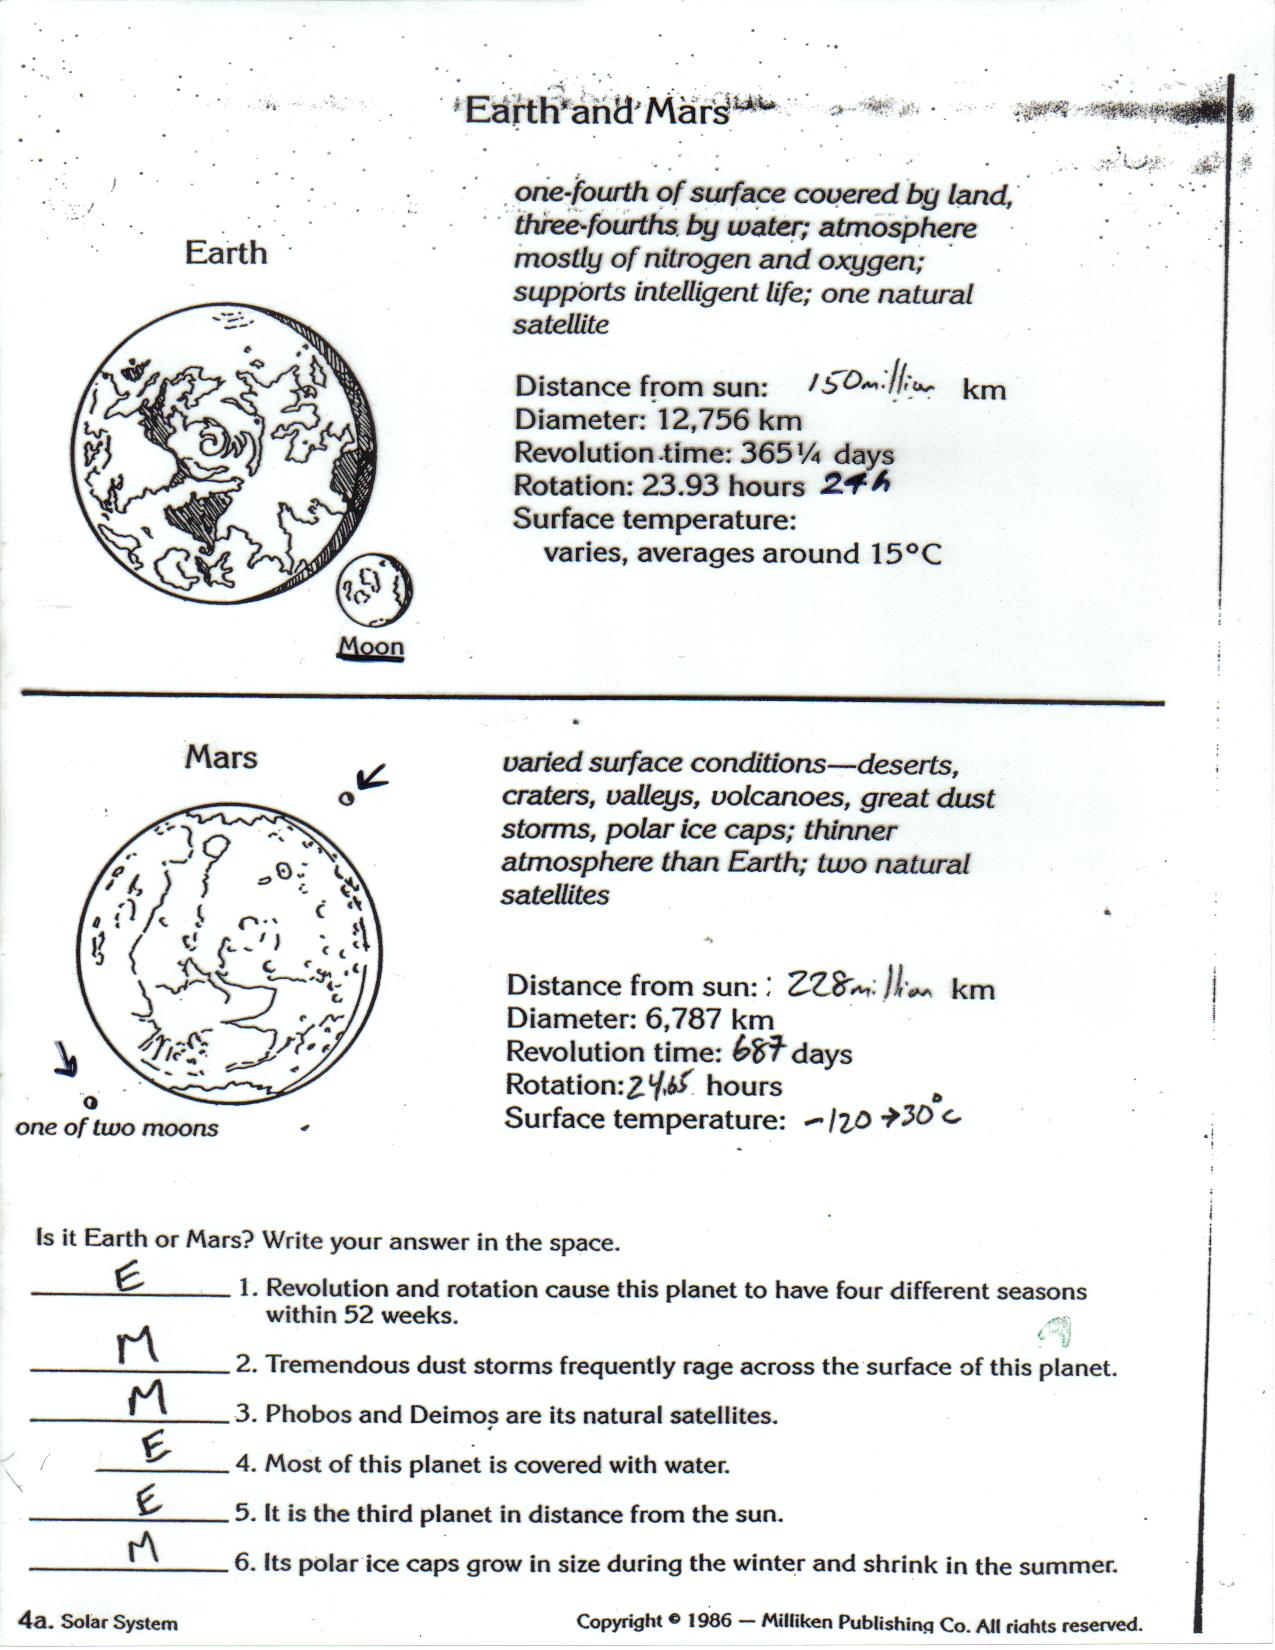 Bill Nye Space Exploration Worksheet (page 4) - Pics about ...